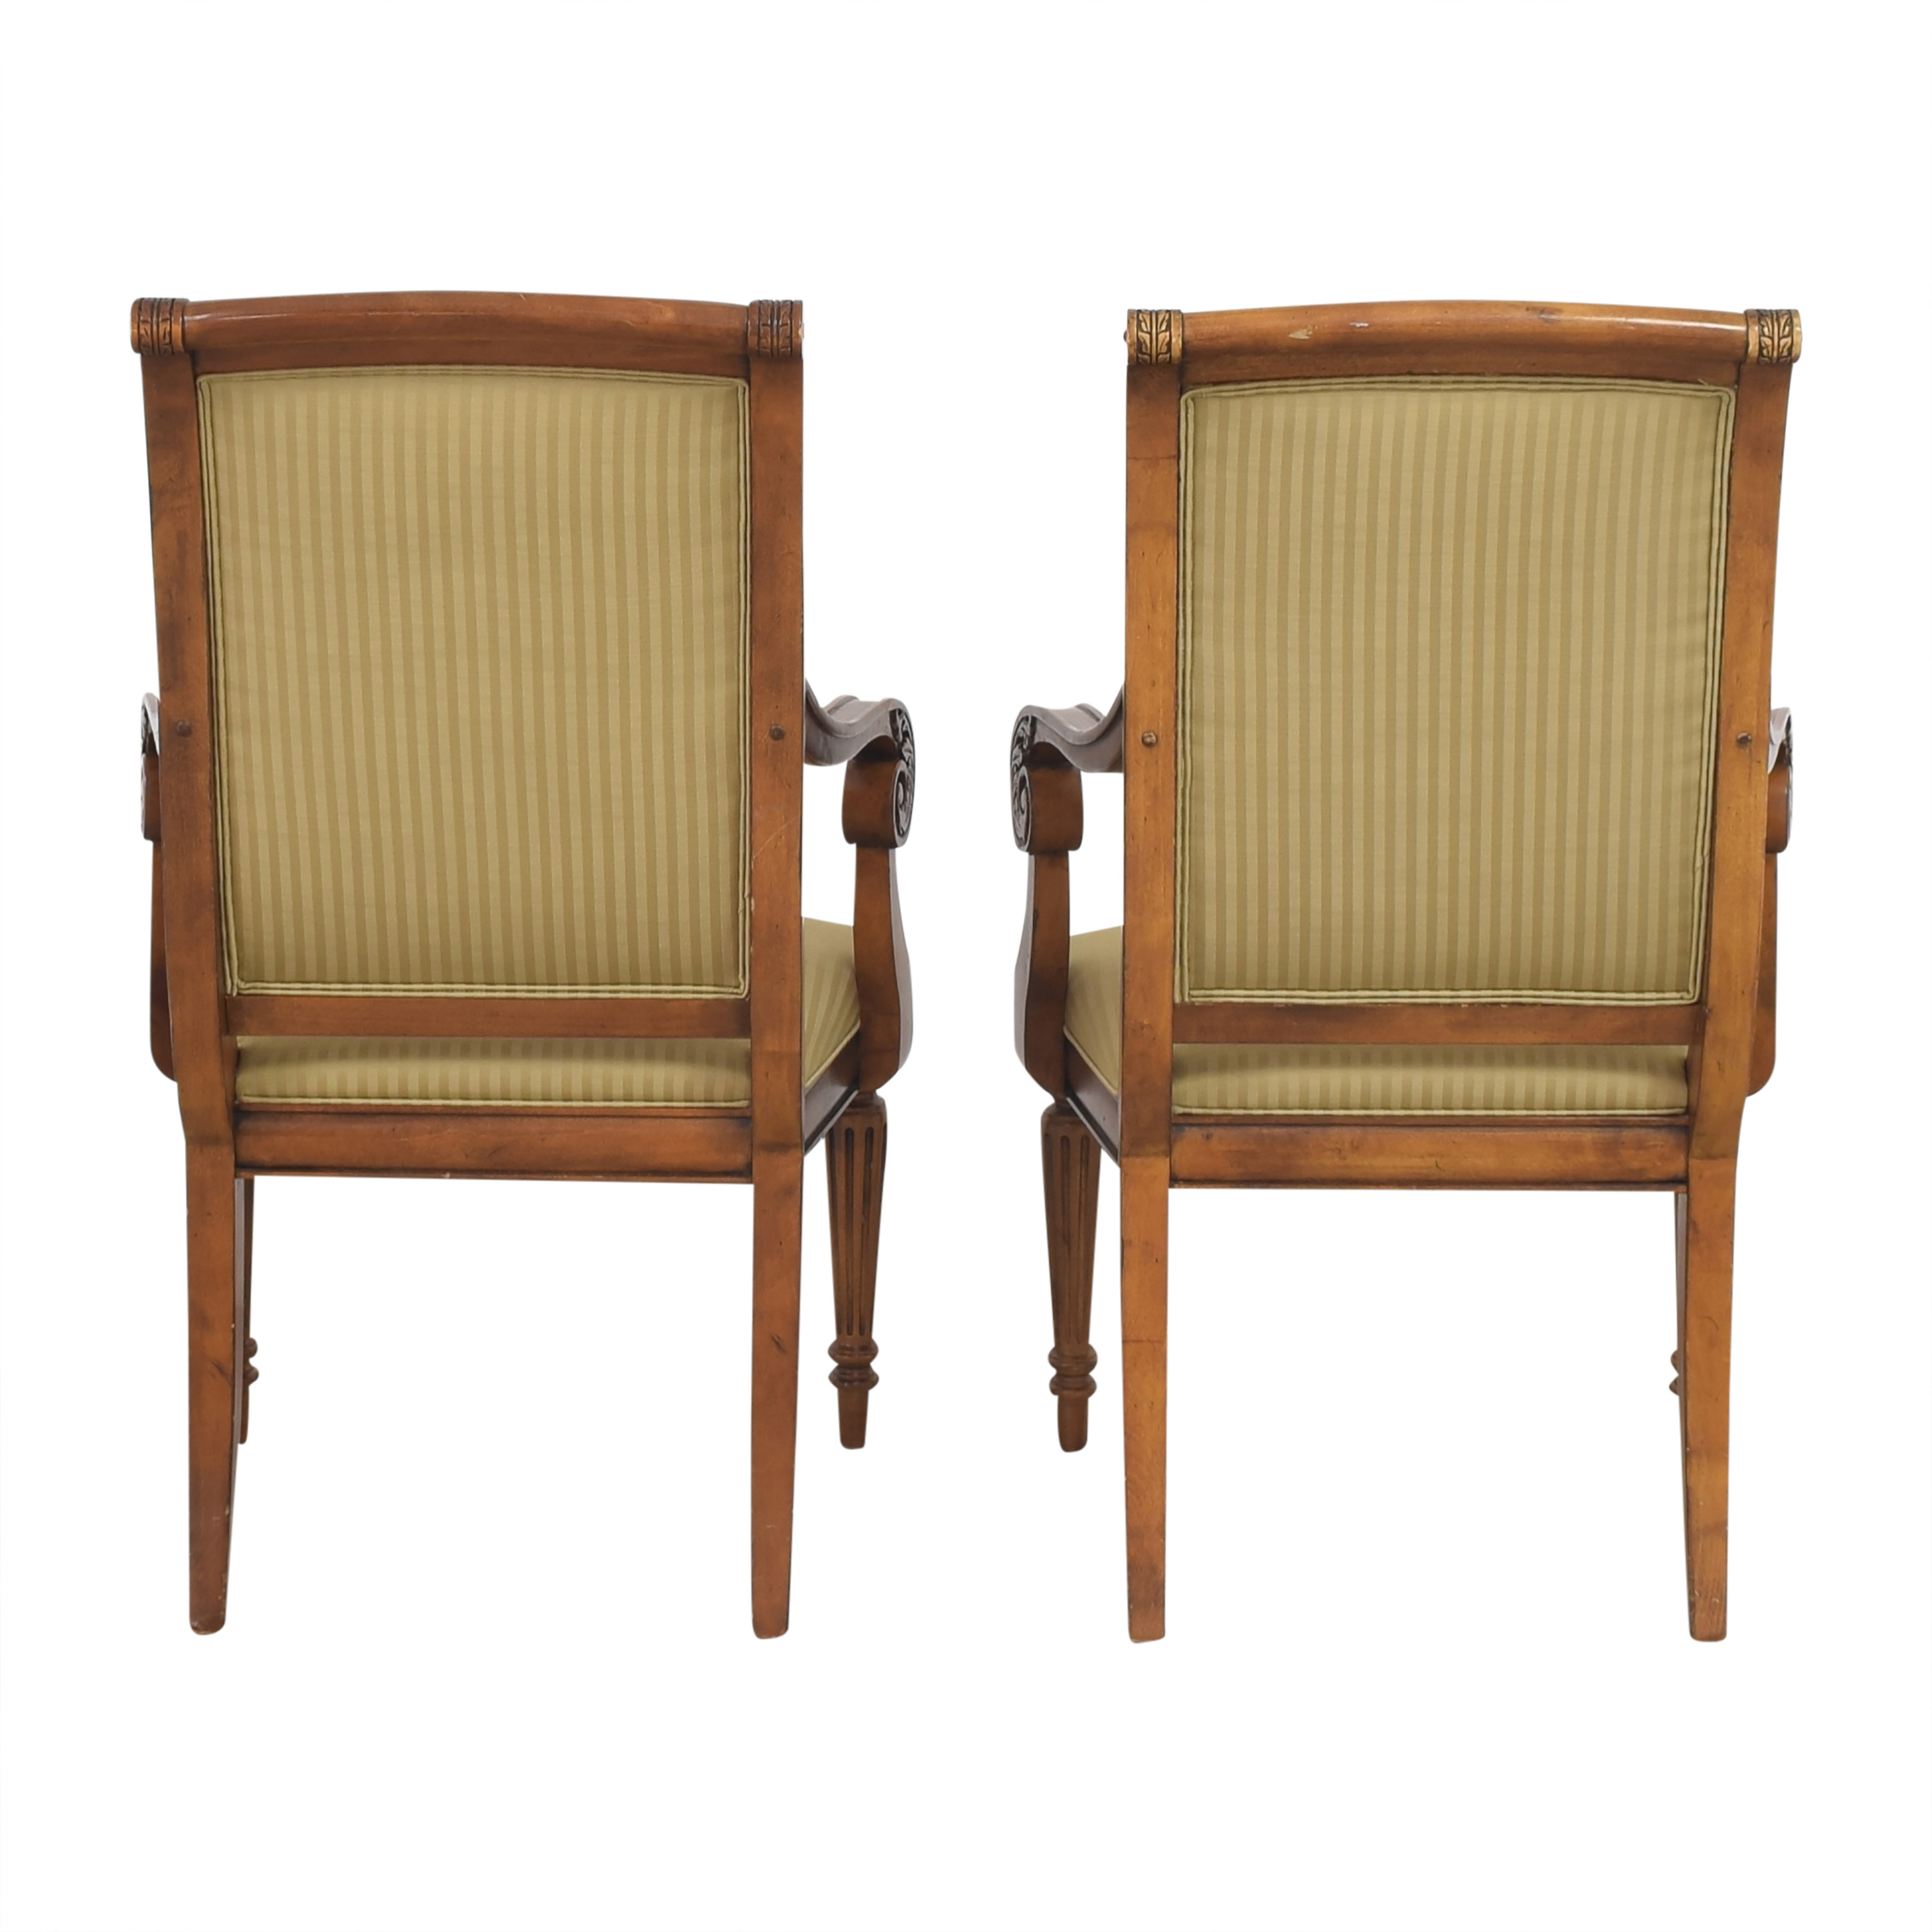 Ethan Allen Ethan Allen Adison Dining Arm Chairs on sale